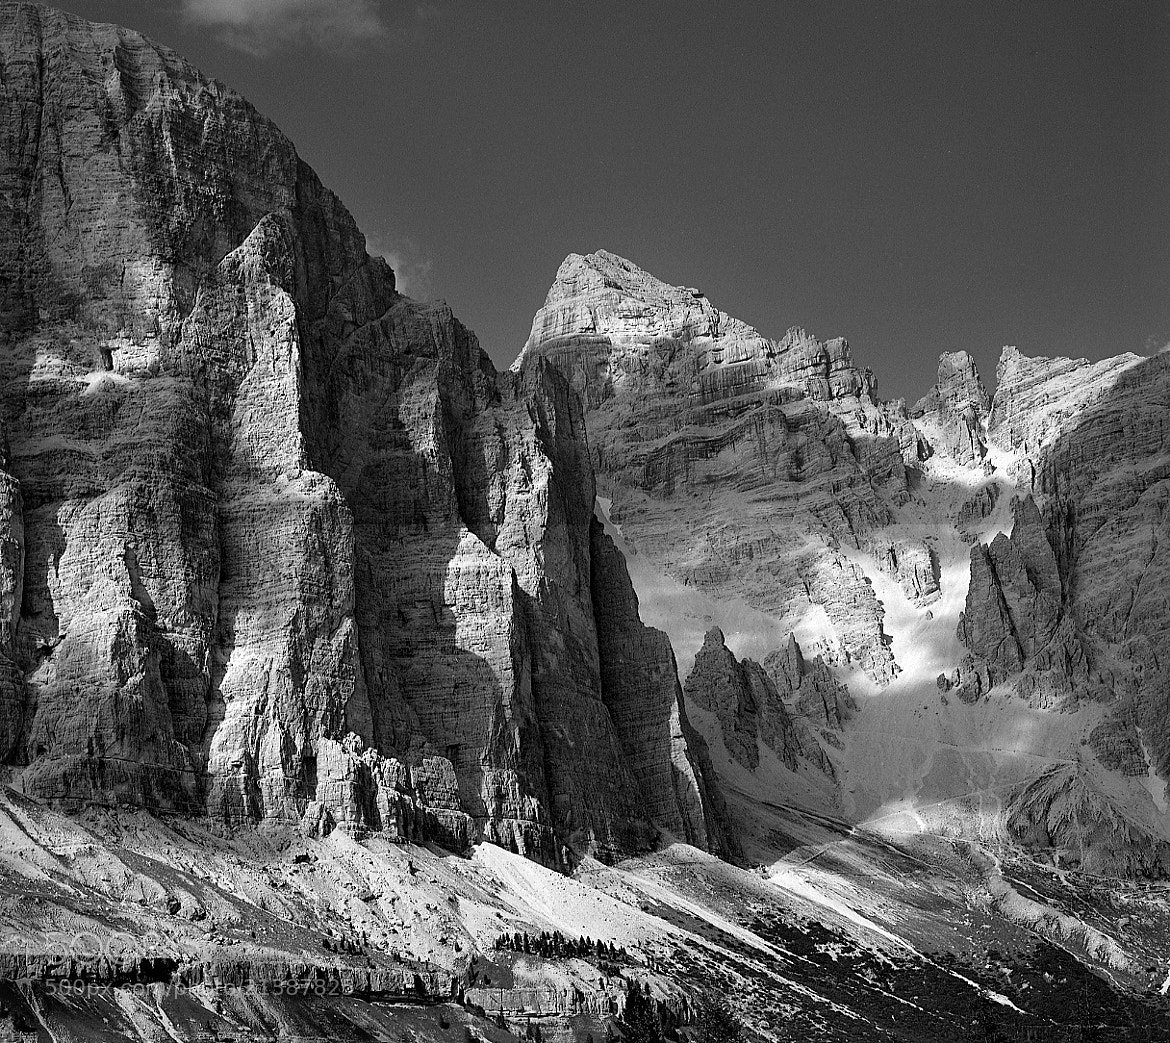 Photograph Dolomites II - Italy by Arne Link on 500px